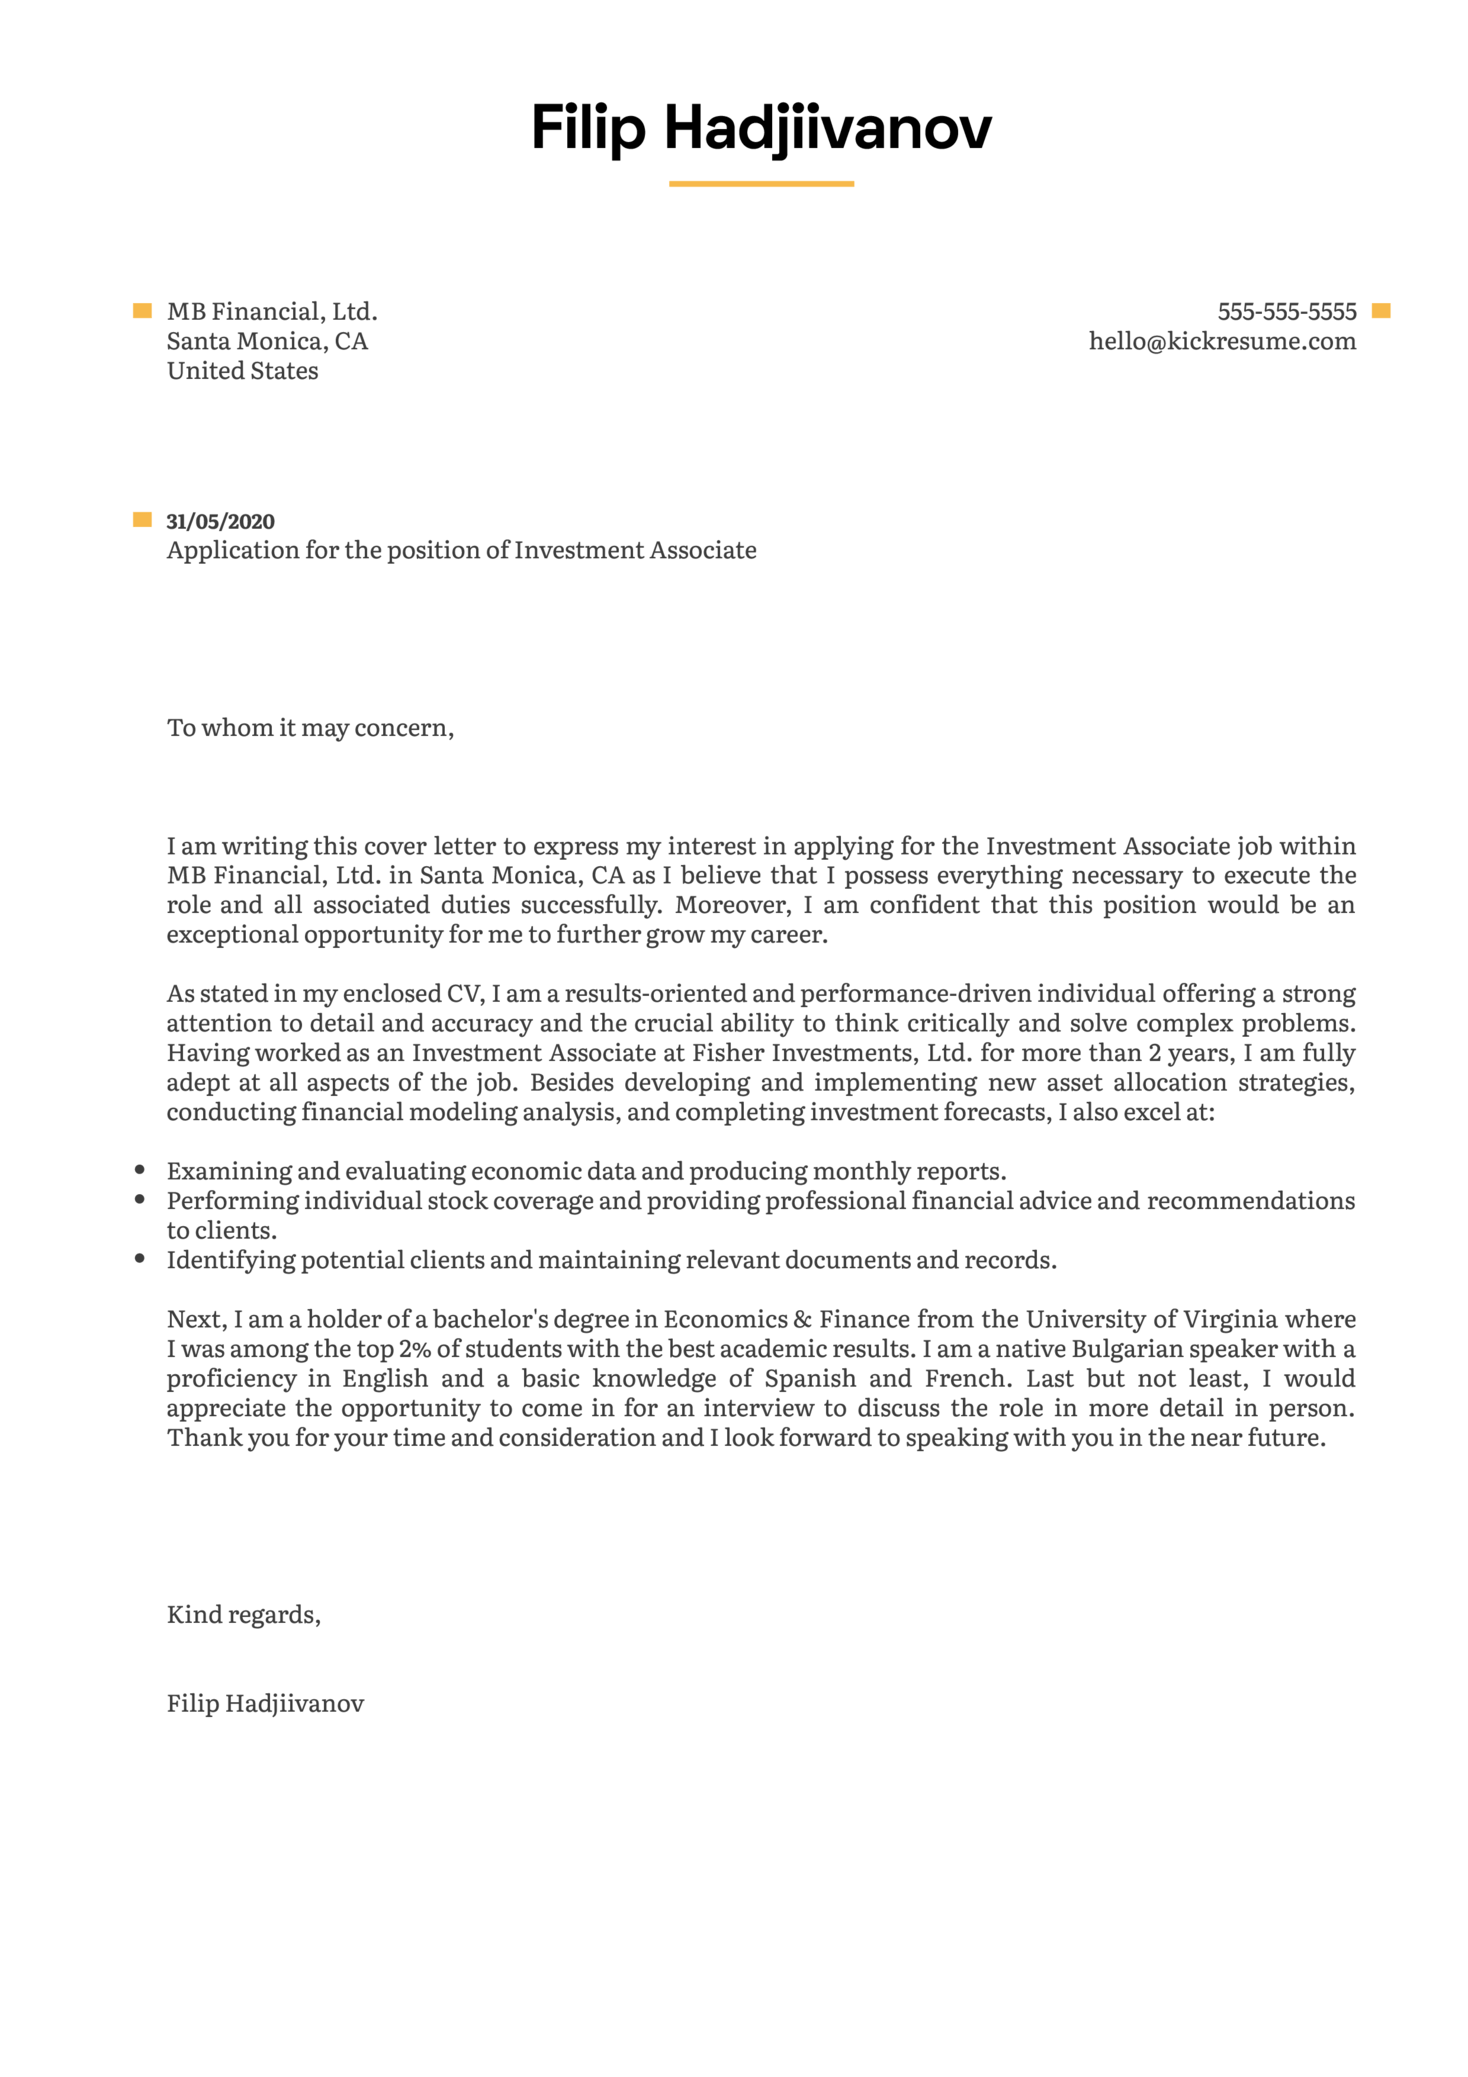 Investment Associate Cover Letter Example